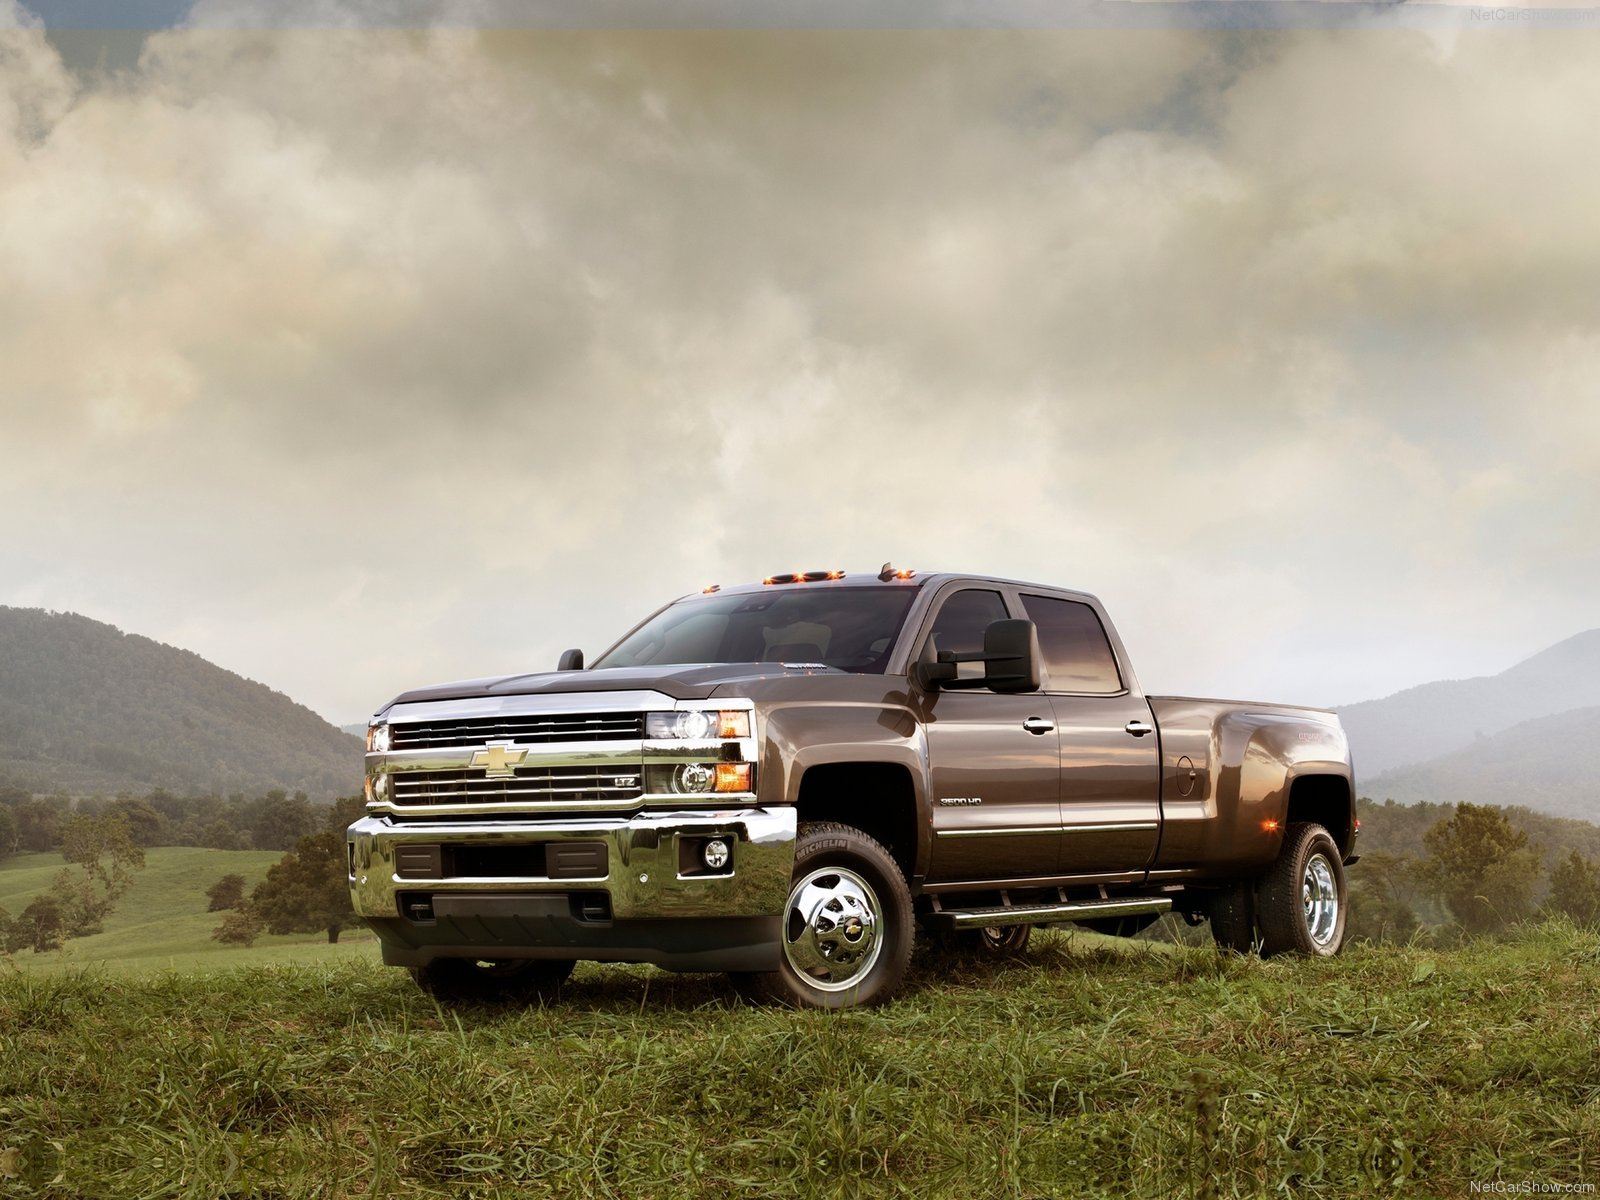 Brown CHevrolet Silverado Wallpaper HD 15662 Wallpaper Wallpaper 1600x1200